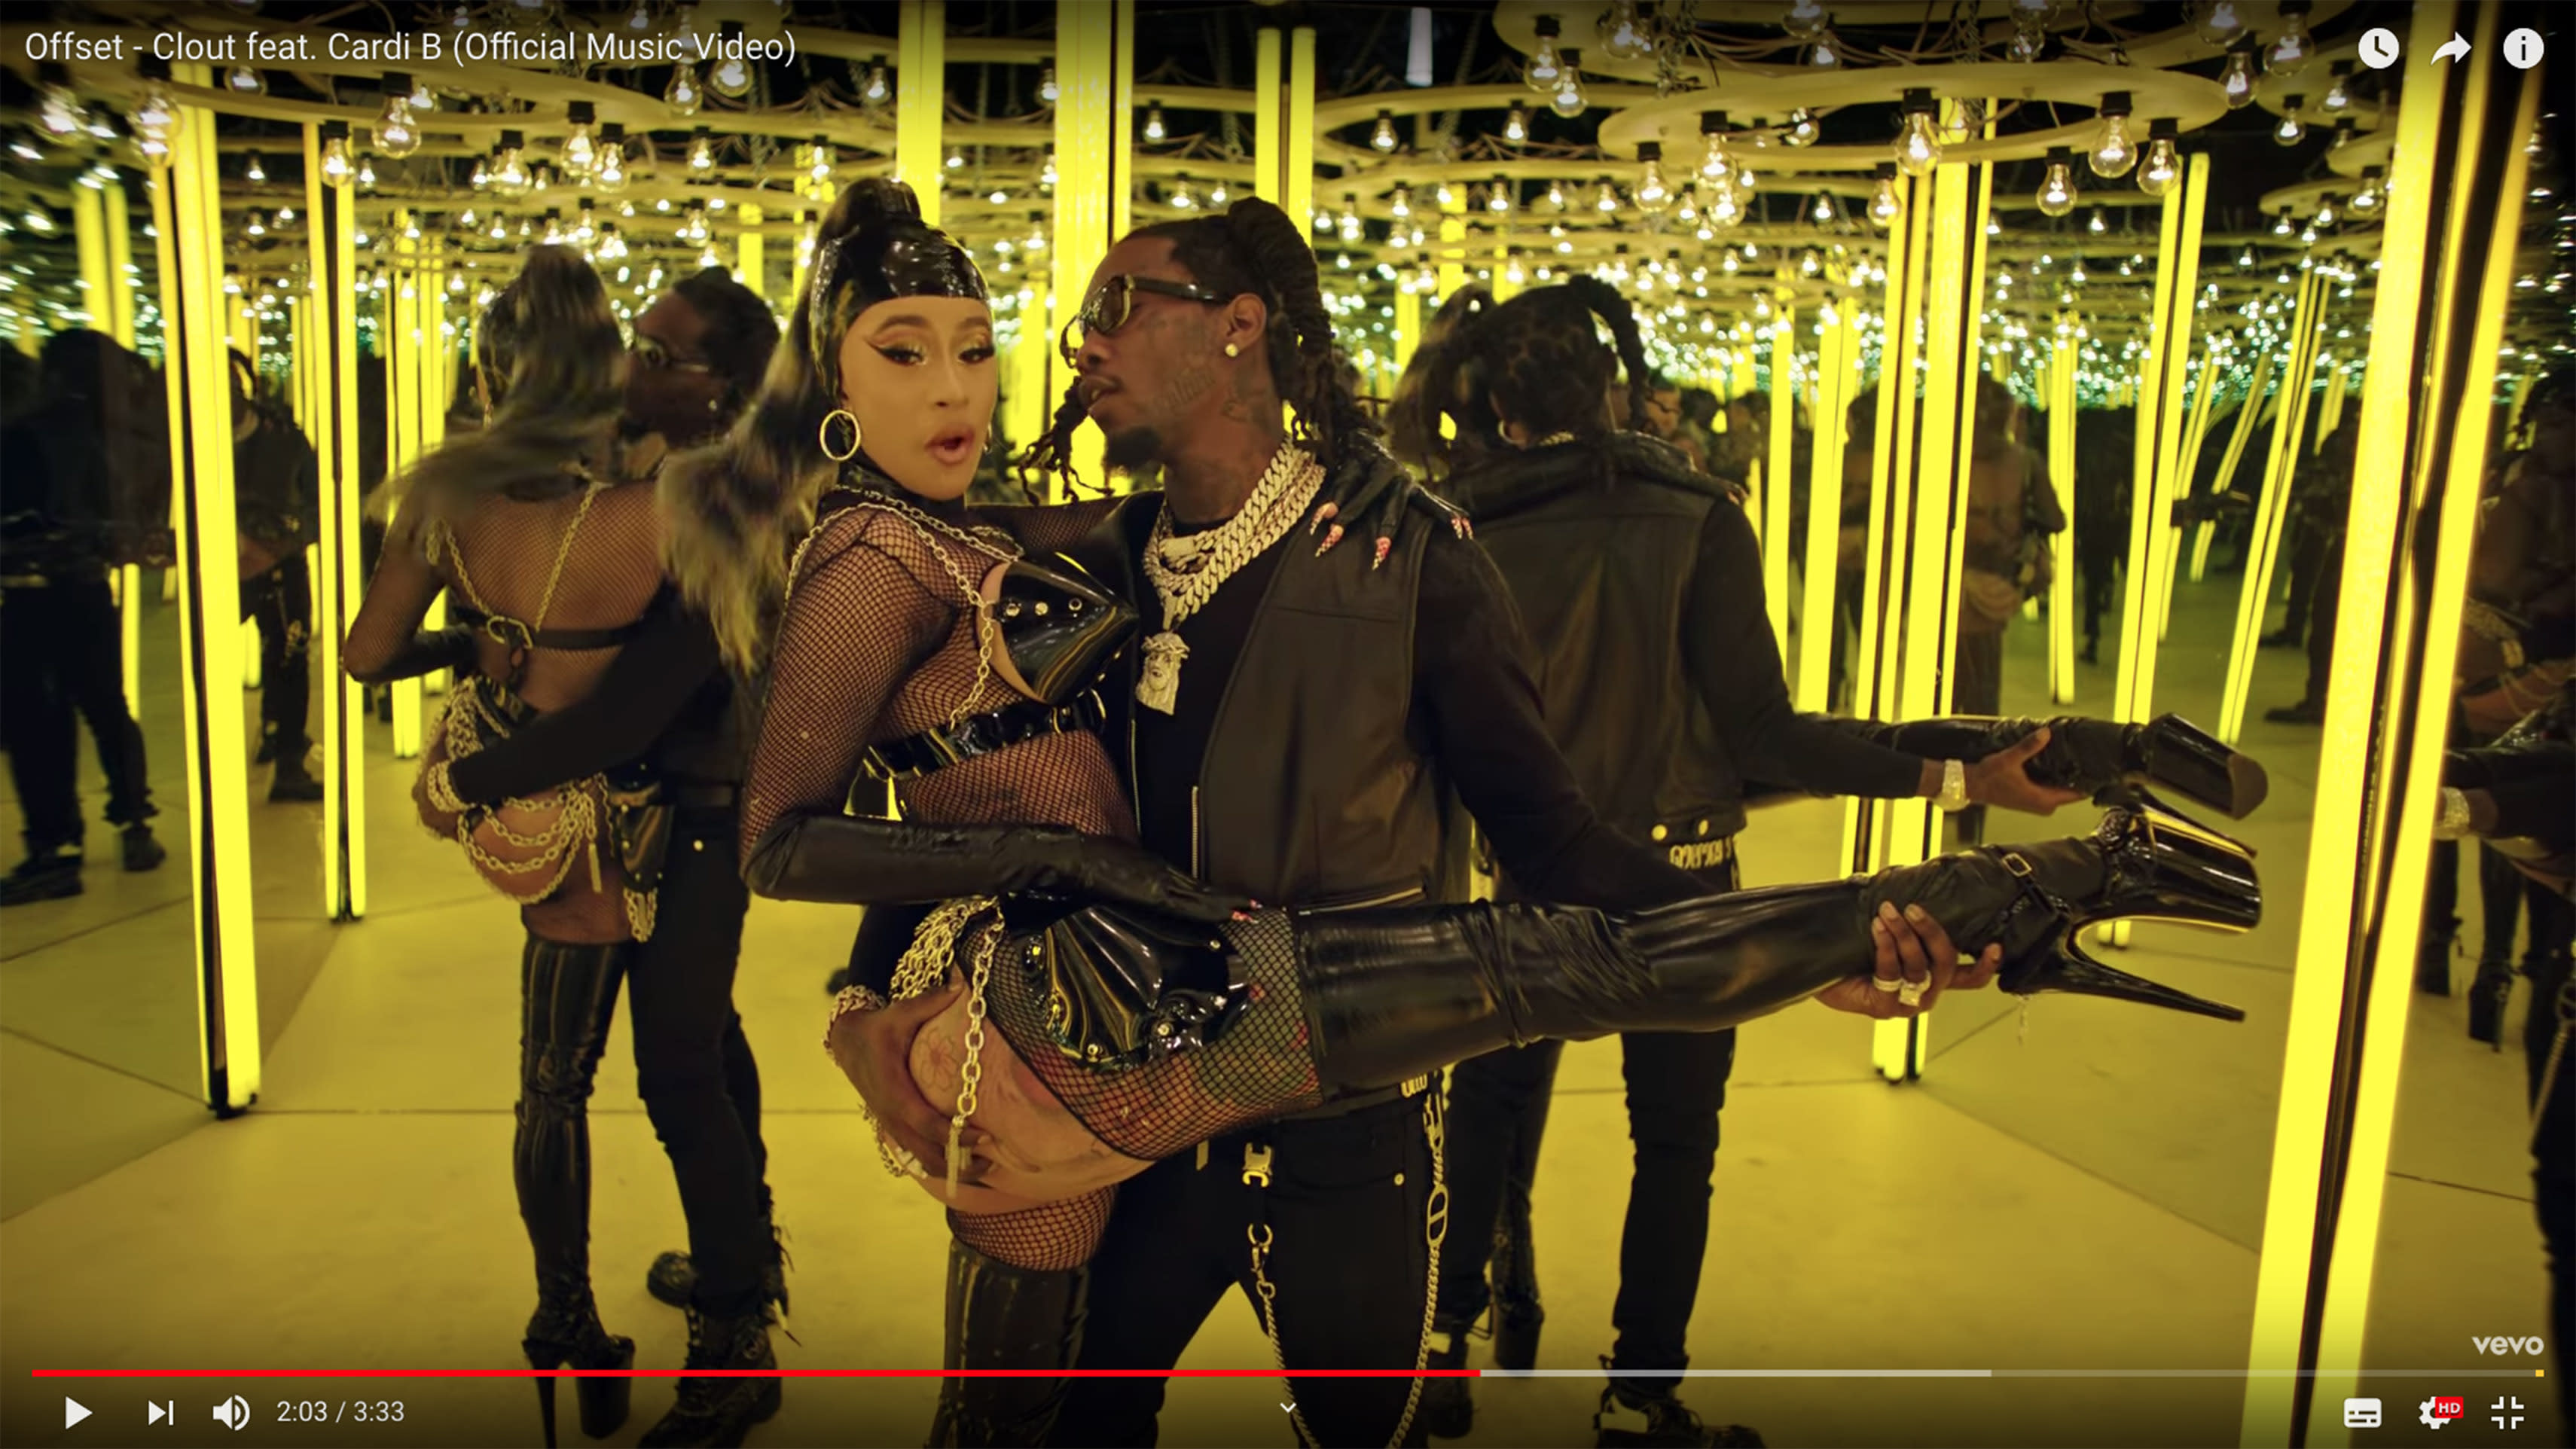 5377c5c4234e Cardi B and Offset get close in new  Clout  video